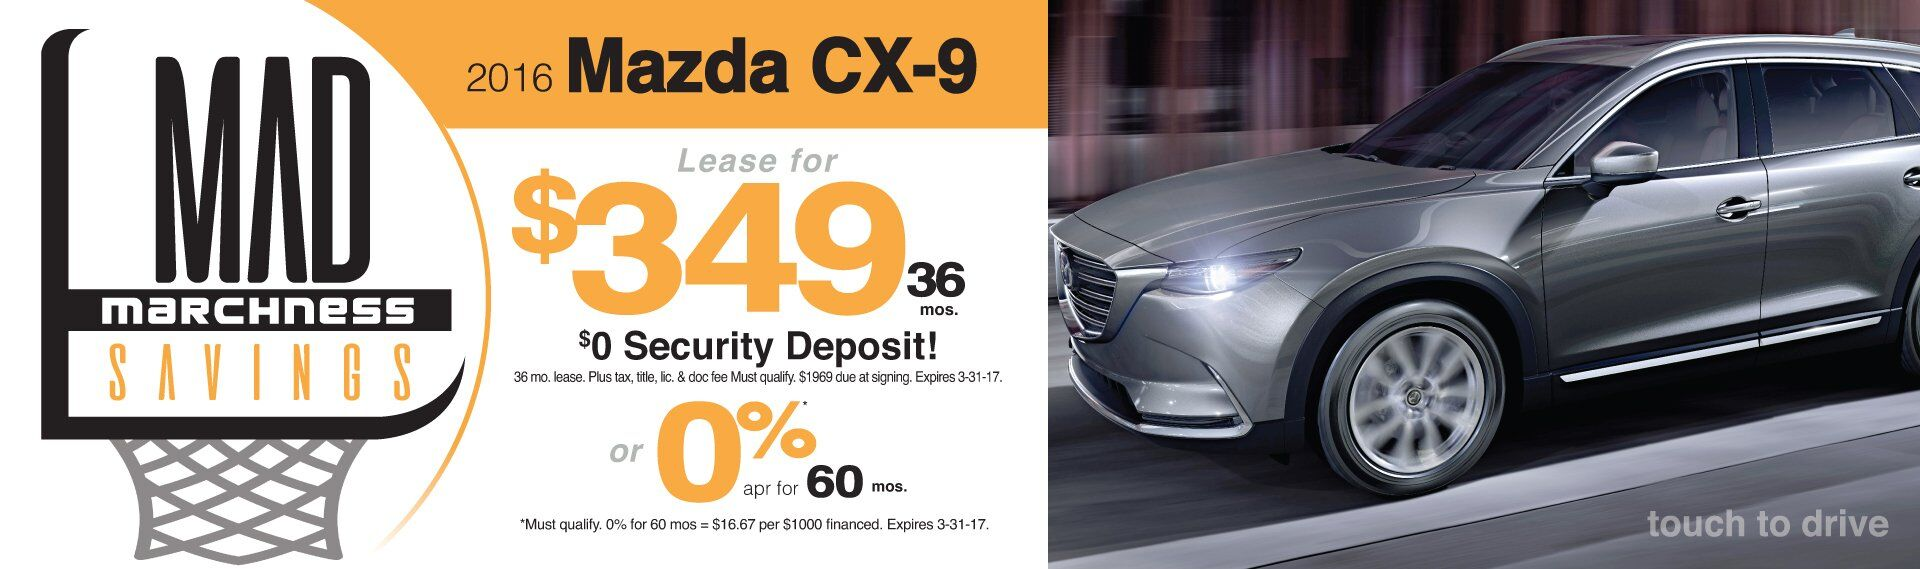 Mad Marchness Mazda CX-9 Specials